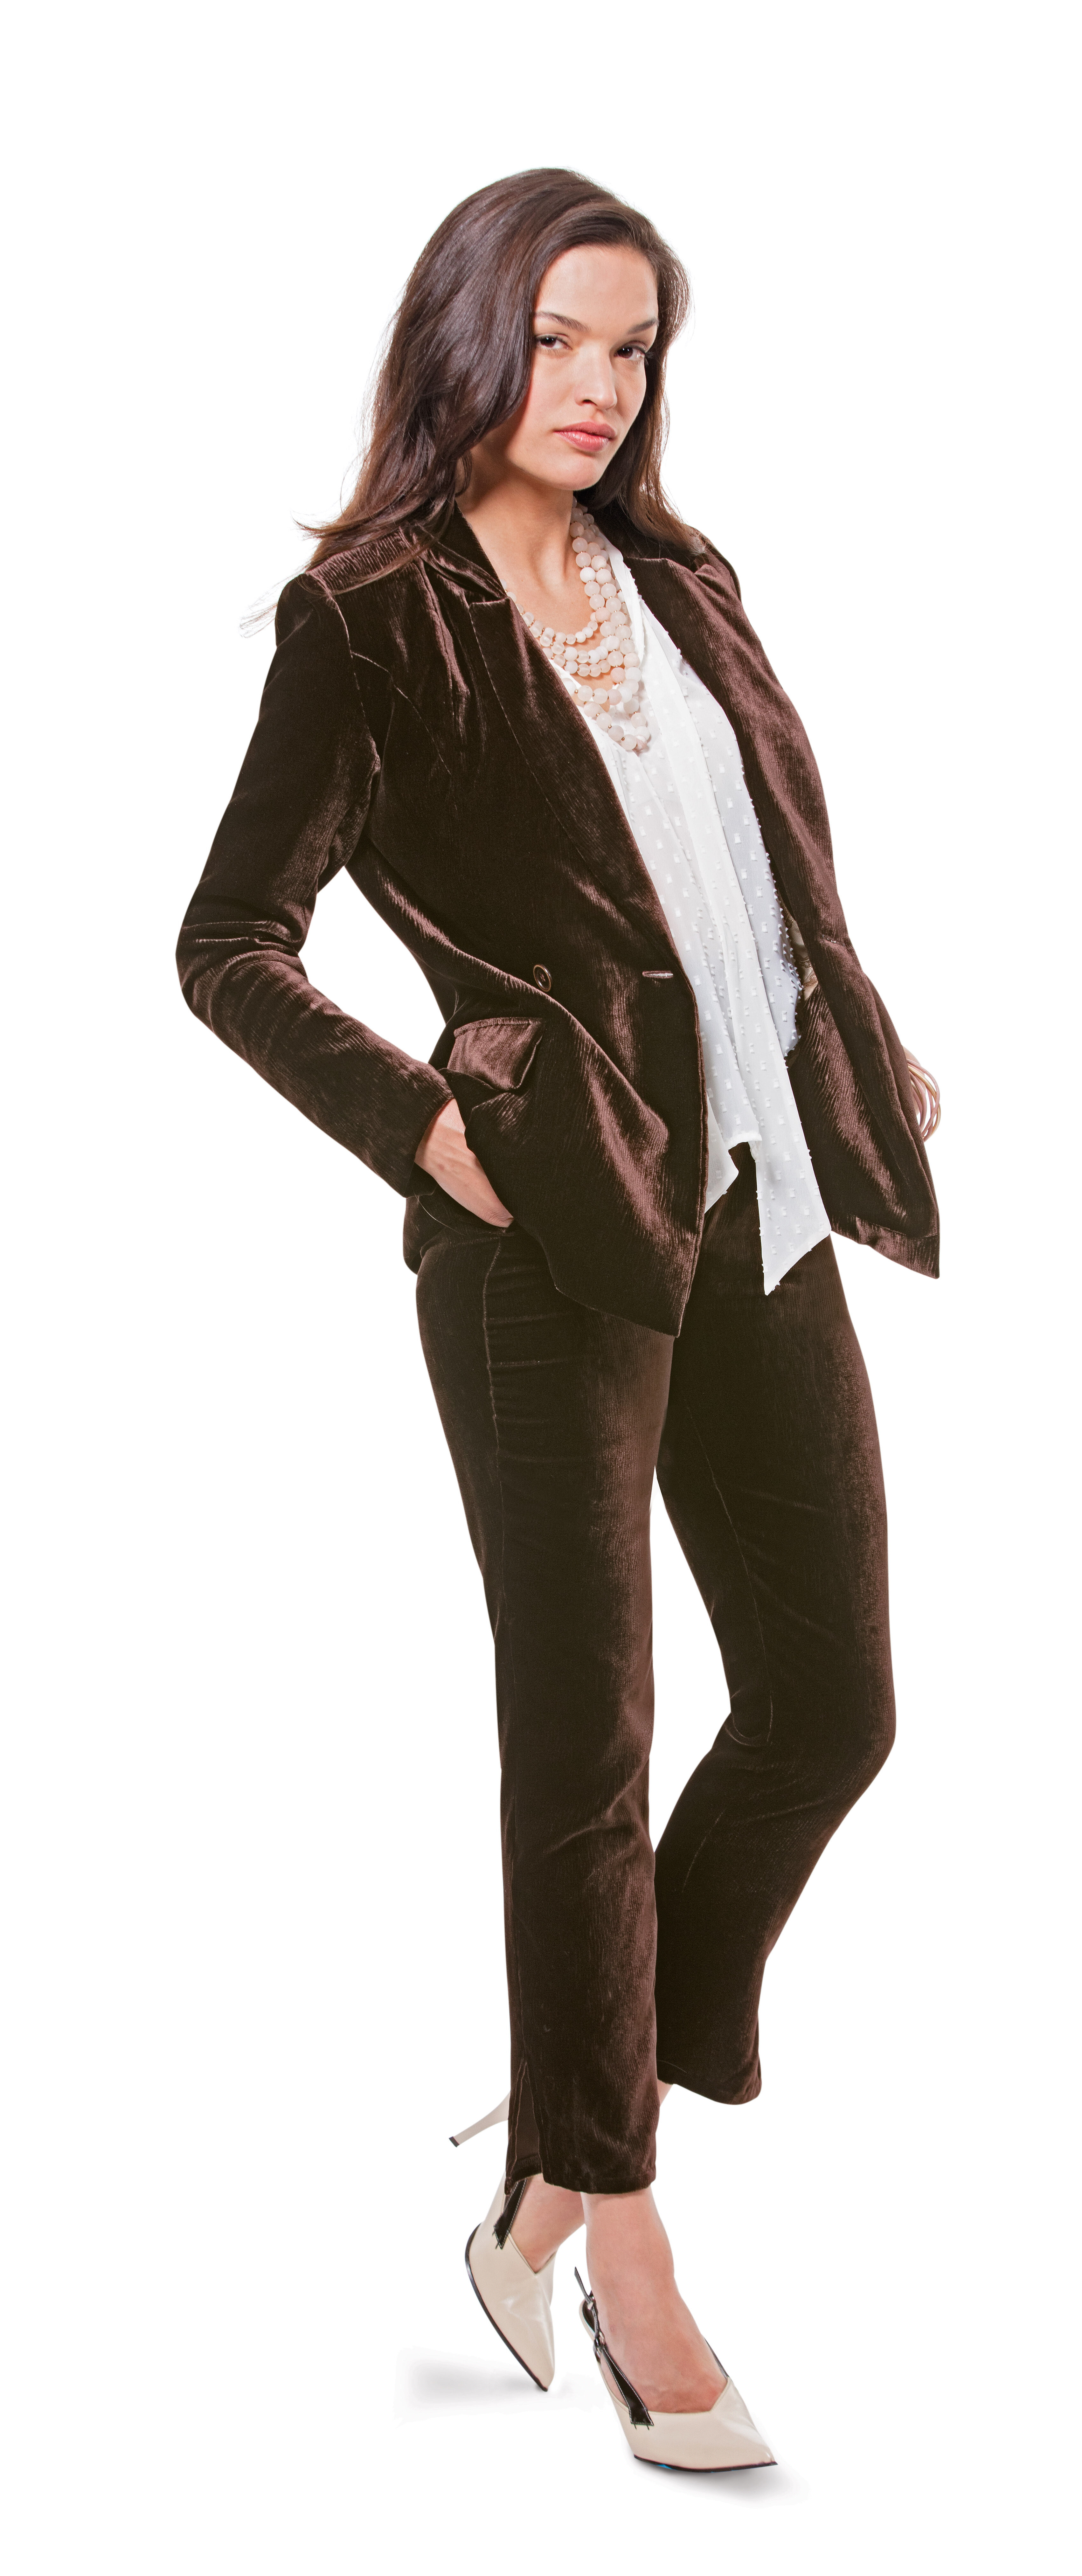 The comfortable suit, with slim or wide trousers, reigns supreme this season. The look works for any day of the week.